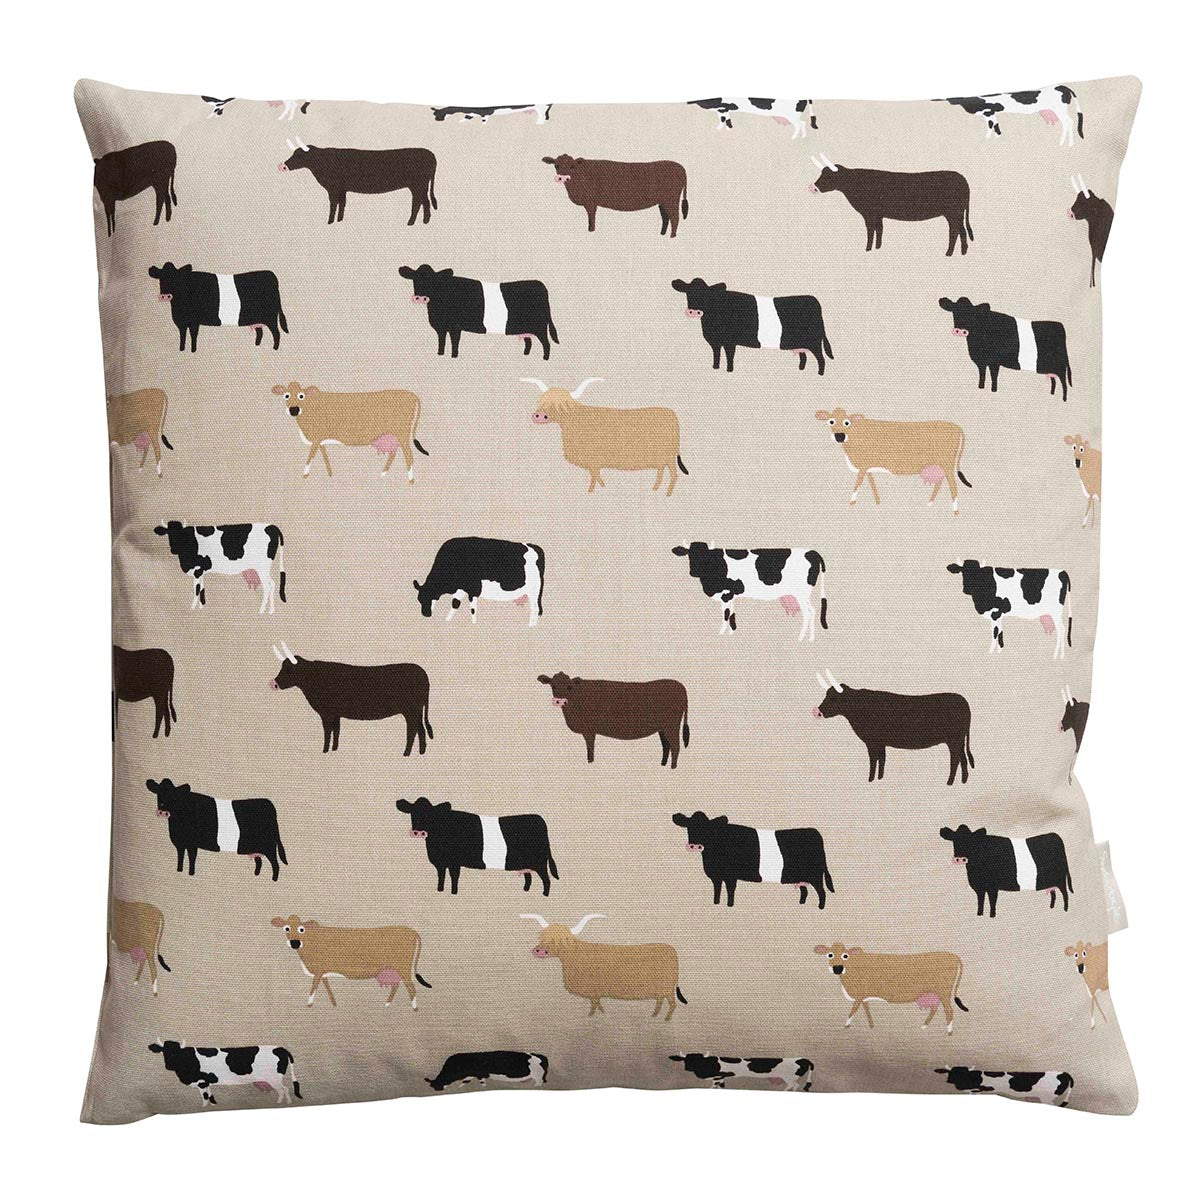 Cows Cushion